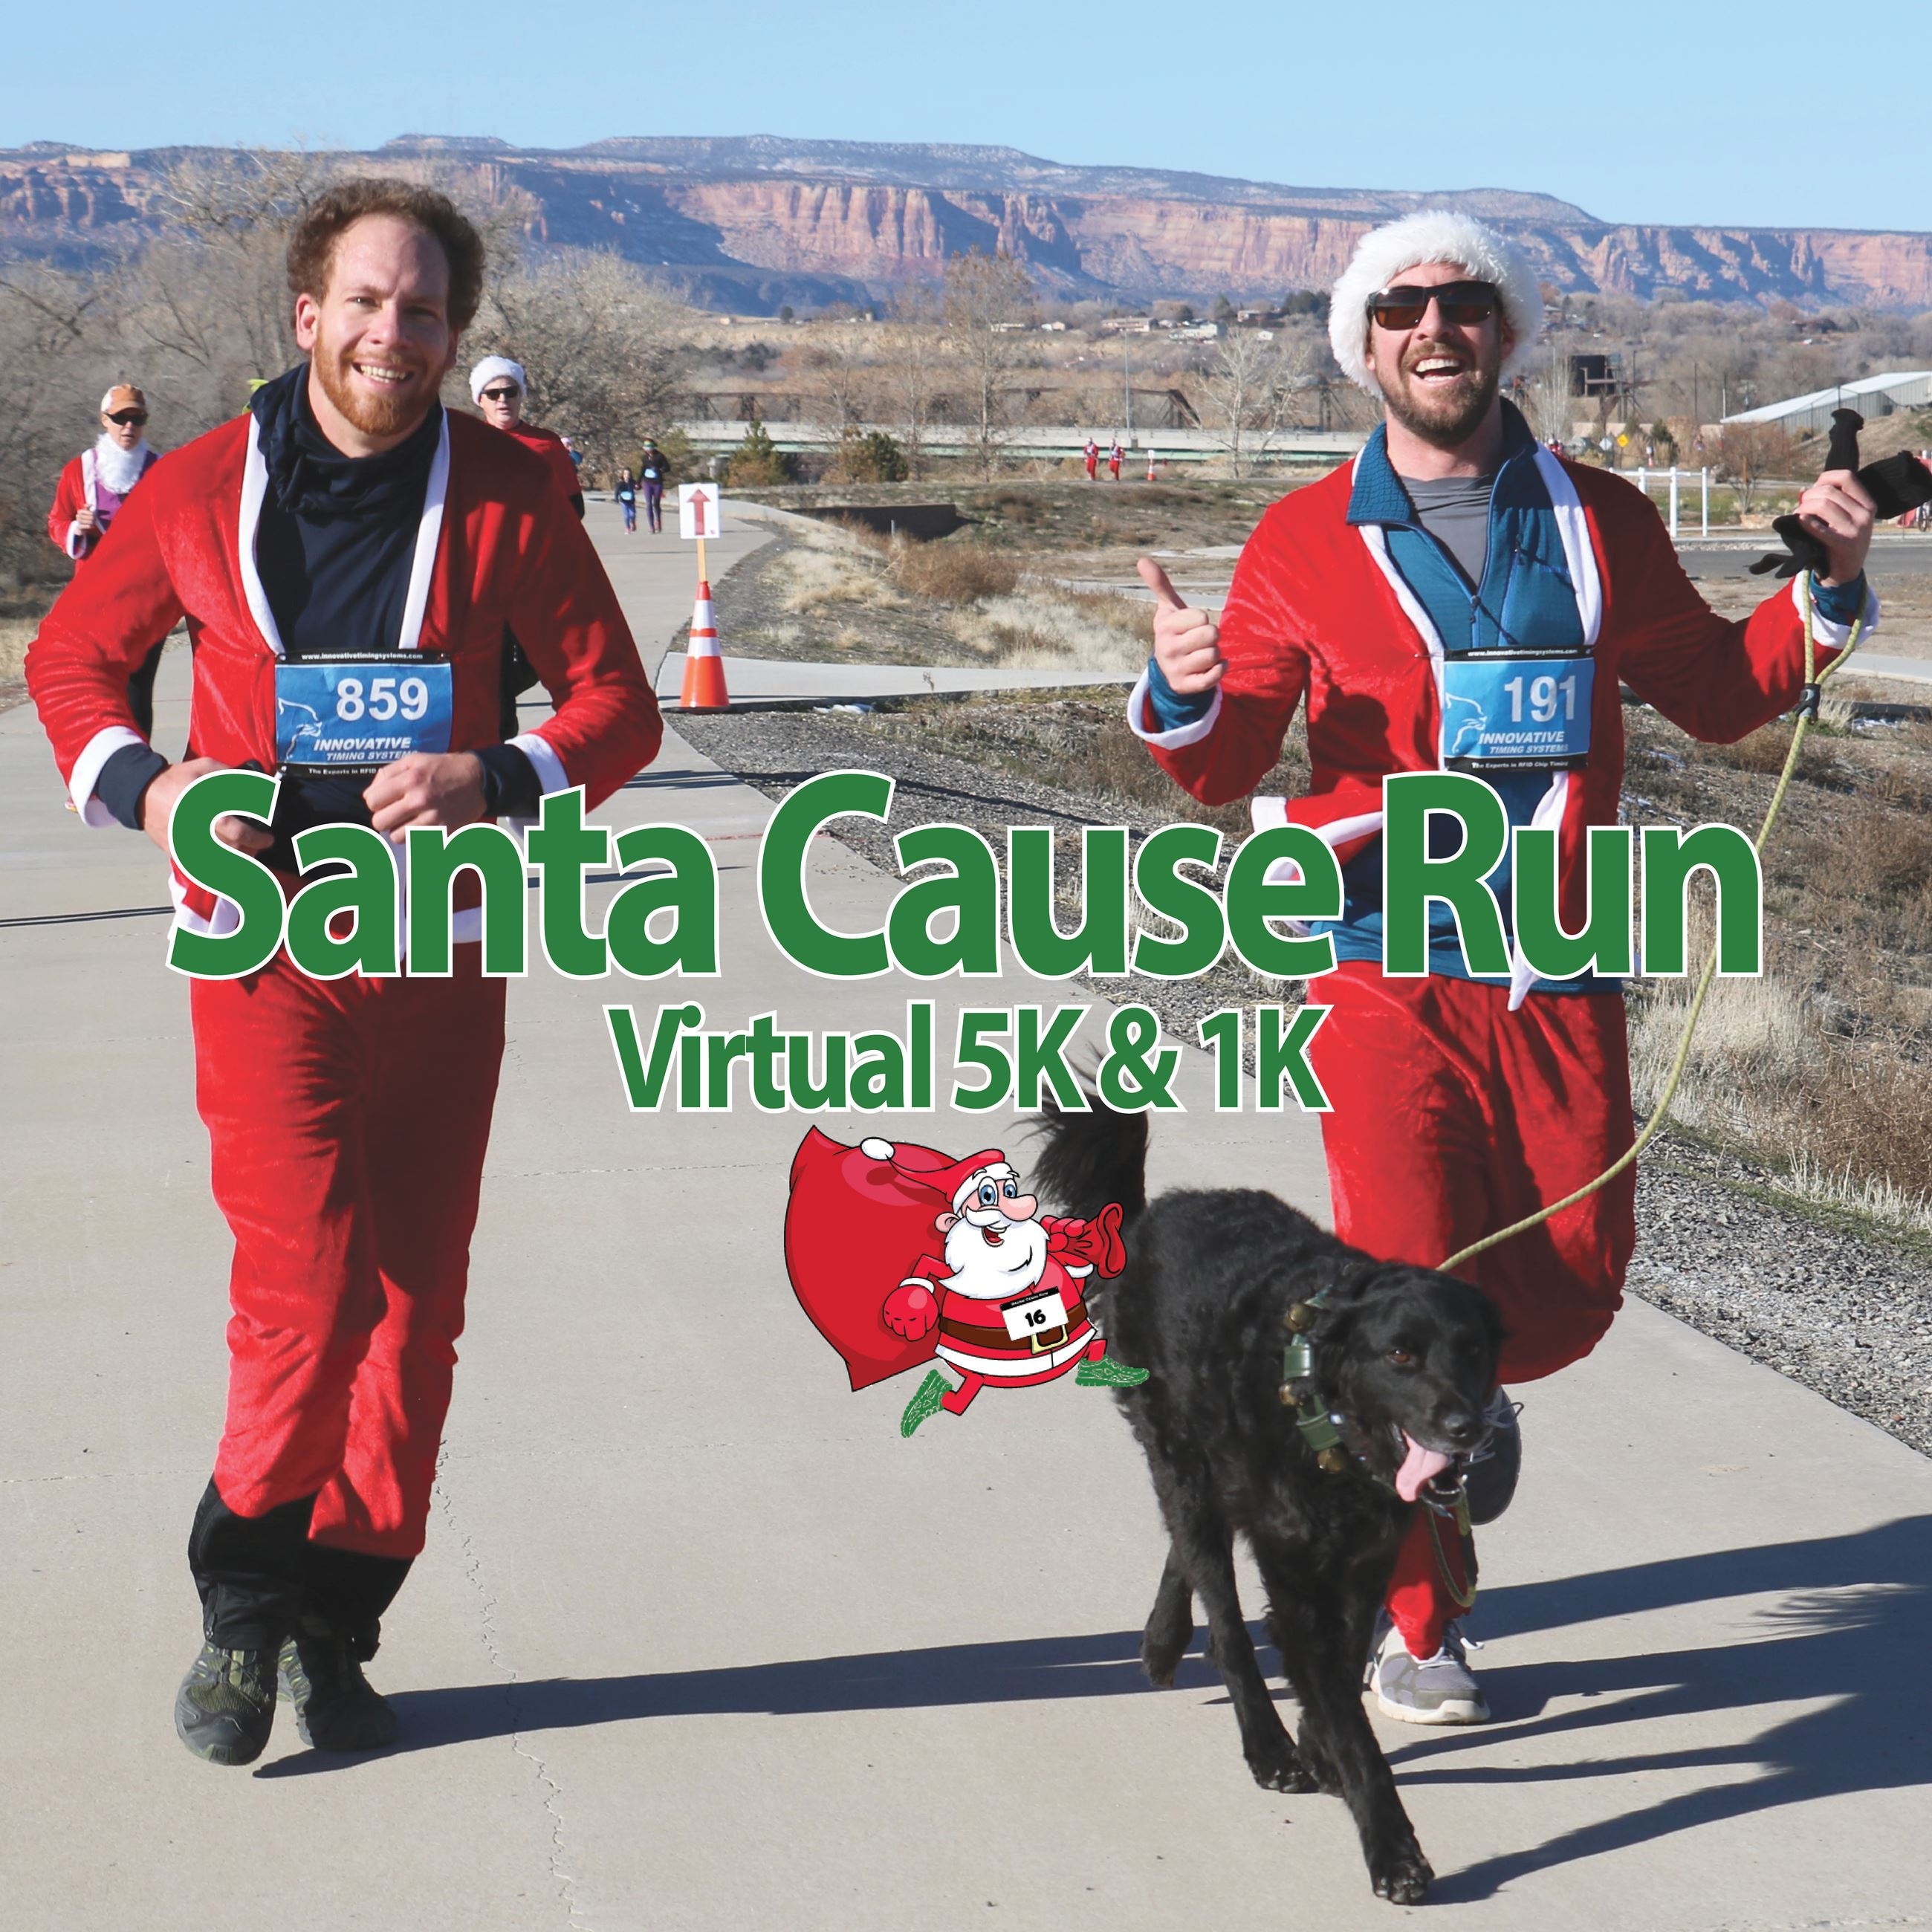 Two men running in Santa suites. Participating in the Santa Cause Run.